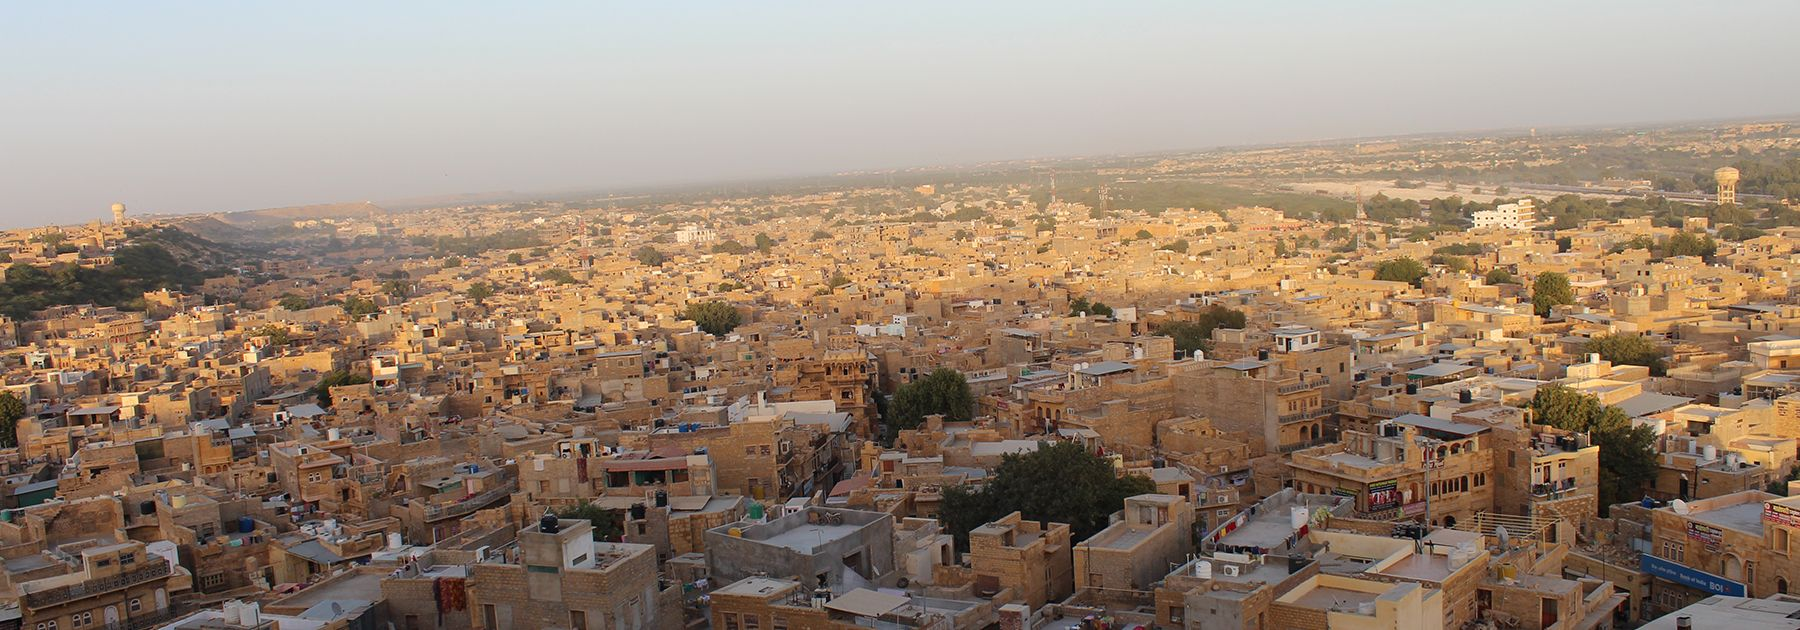 """A view of the """"Golden City"""", Jaisalmer, from the top of the Jaisalmer fort. (Vivek2285, licensed under CC BY-SA 4.0)"""